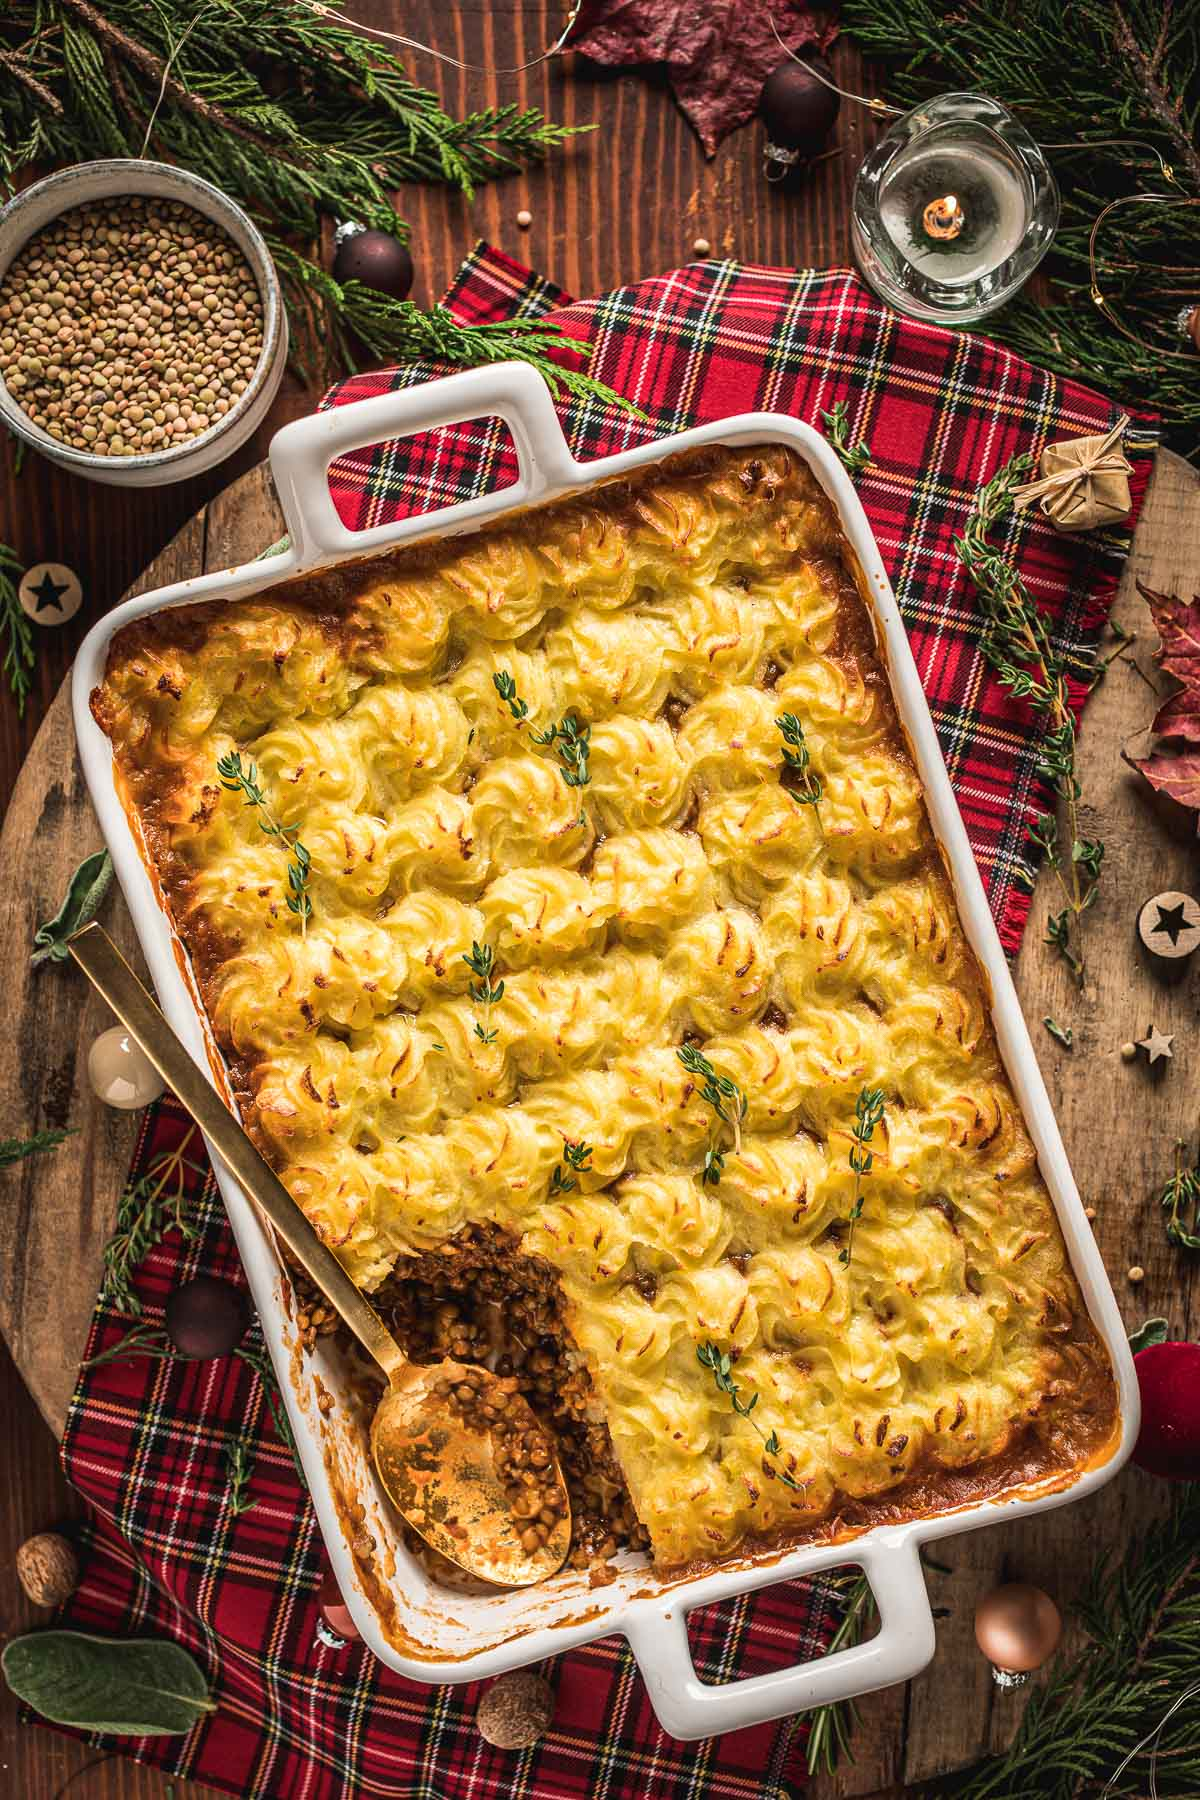 healthy Vegan Shepherd's Pie recipe with lentil ragu for Thanksgiving ricetta di Natale Shepherd's Pie vegana di lenticchie con ragù di lenticchie funghi